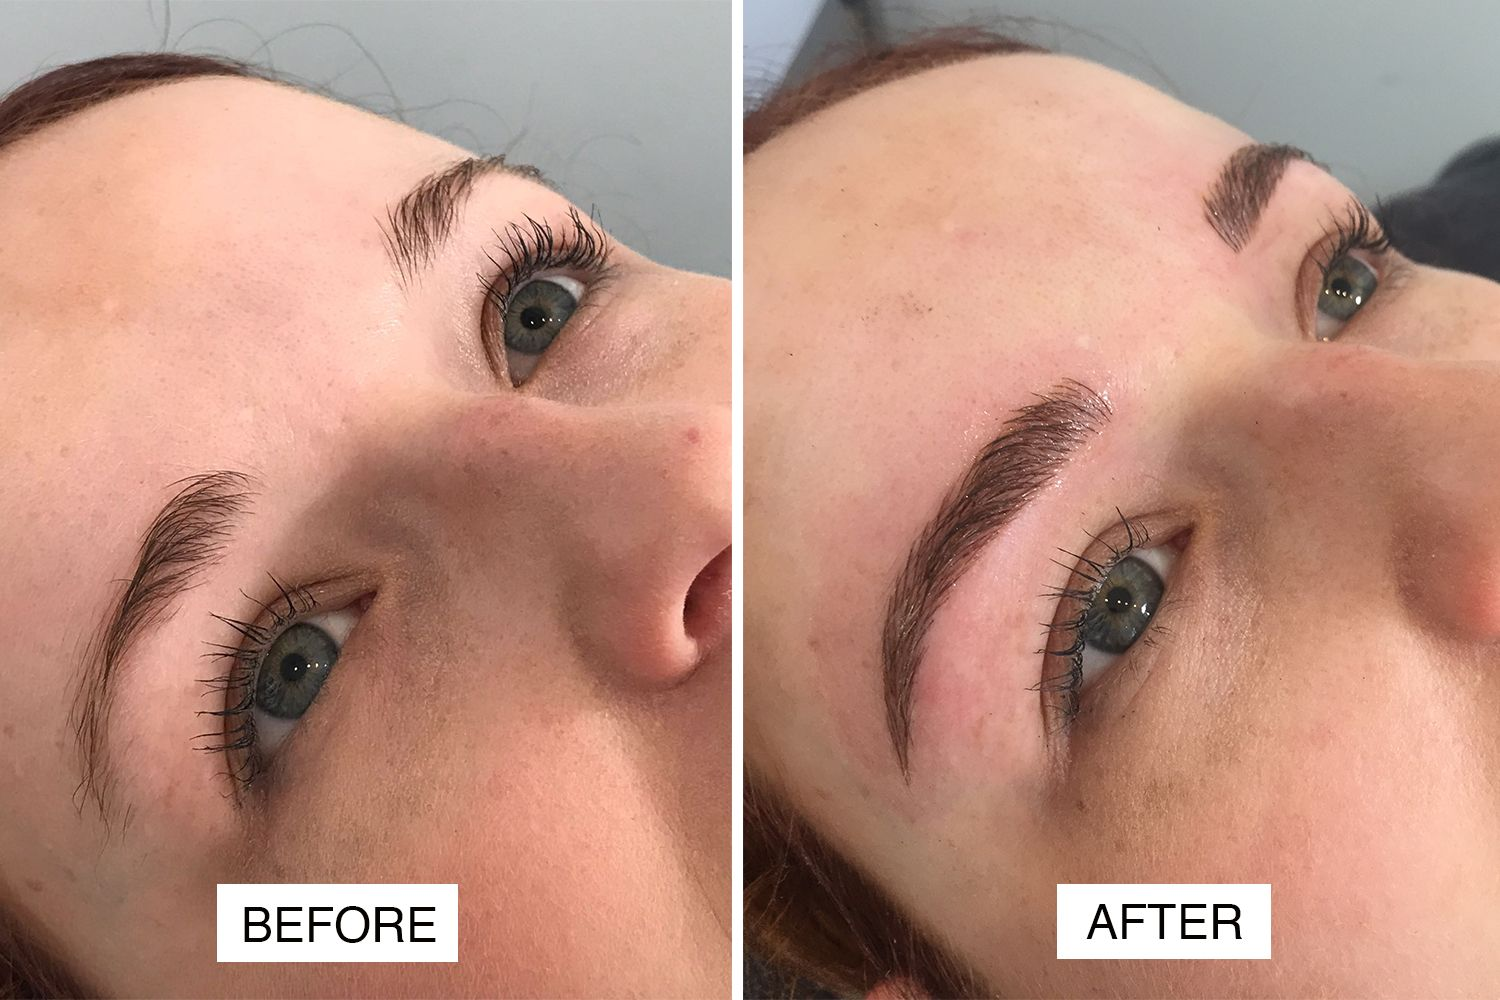 Microblading - Everything You Need To Know About The Semi-Permanent Eyebrow  Treatment